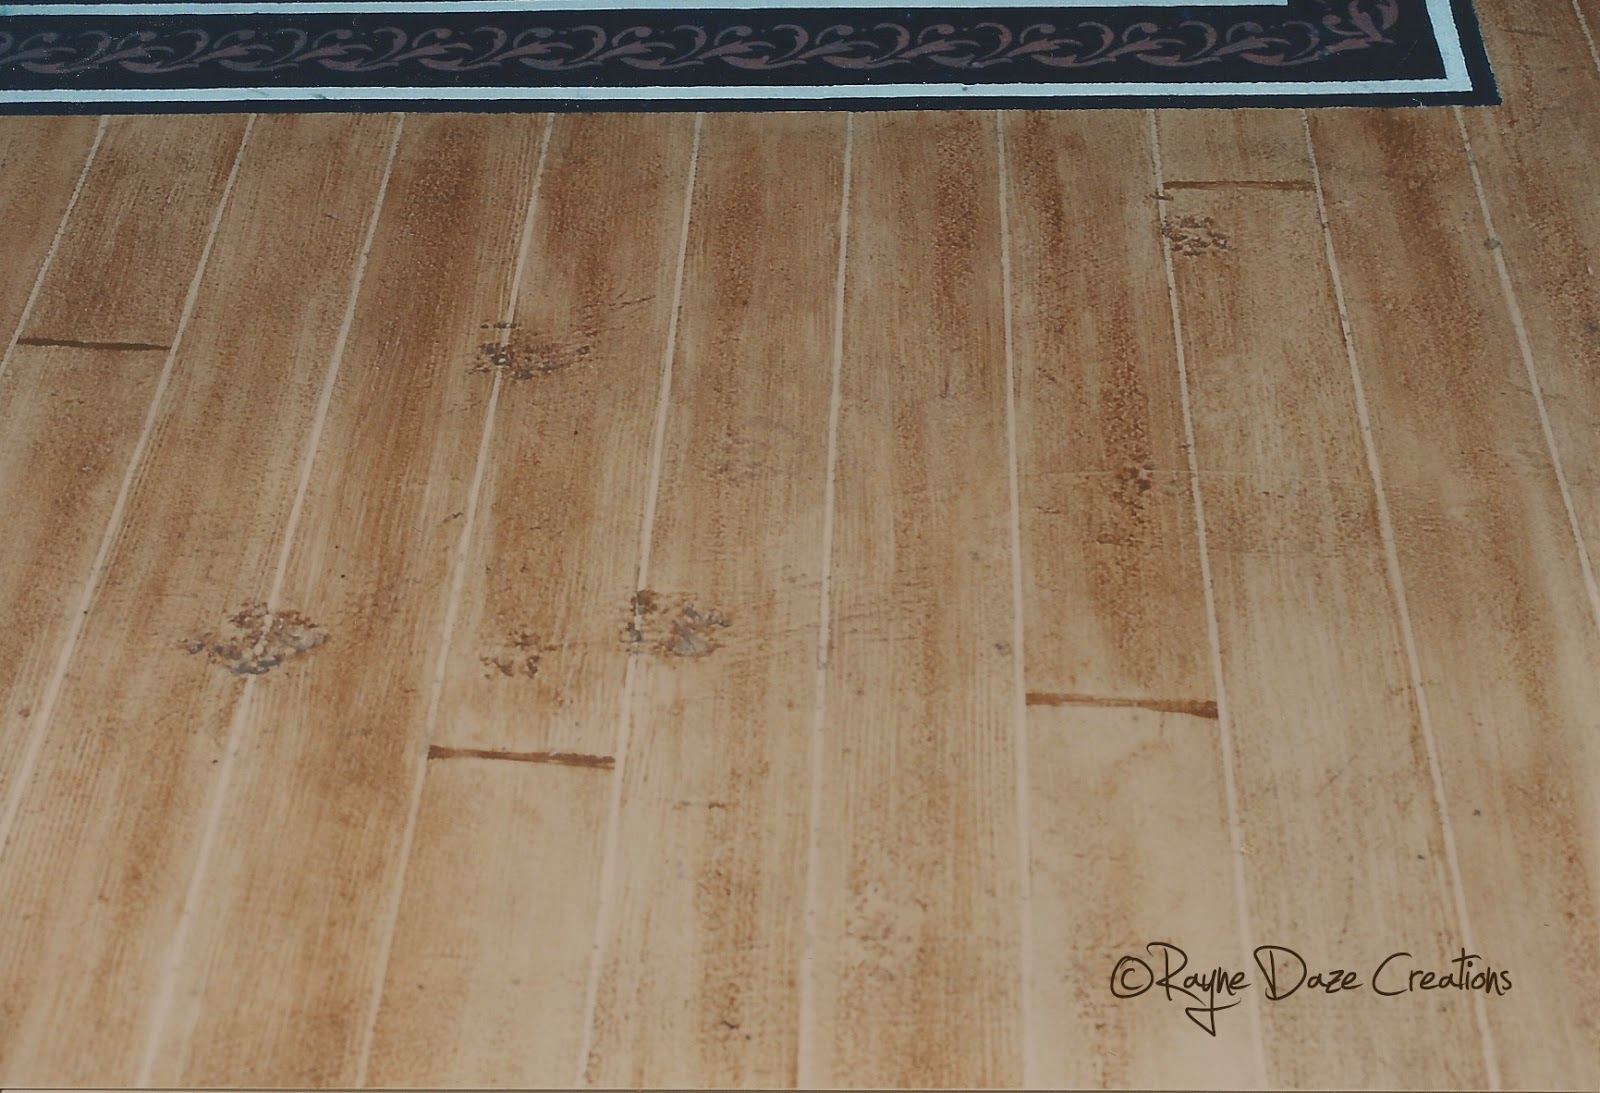 Rayne daze creations faux wood painted concrete floor for Simulated wood flooring